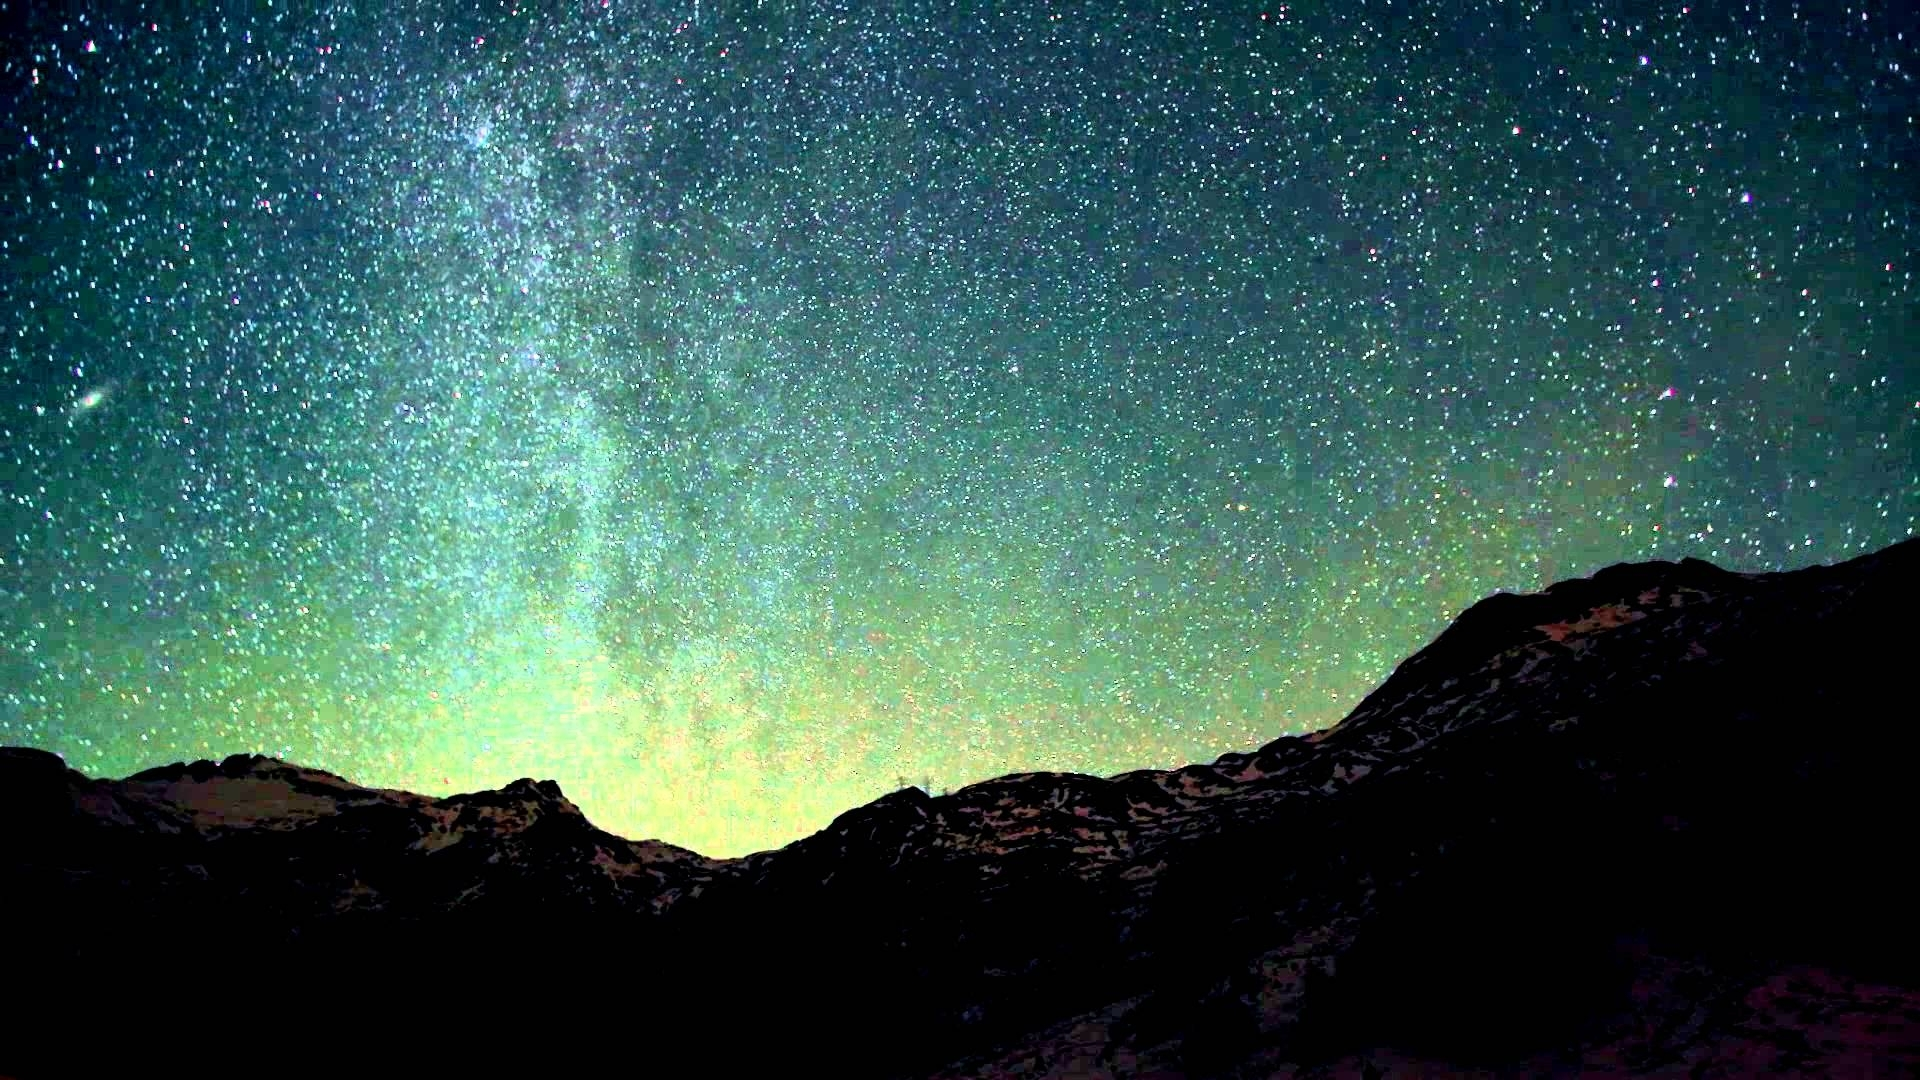 video background hd - style proshow -moon - midnight - star - sky hd